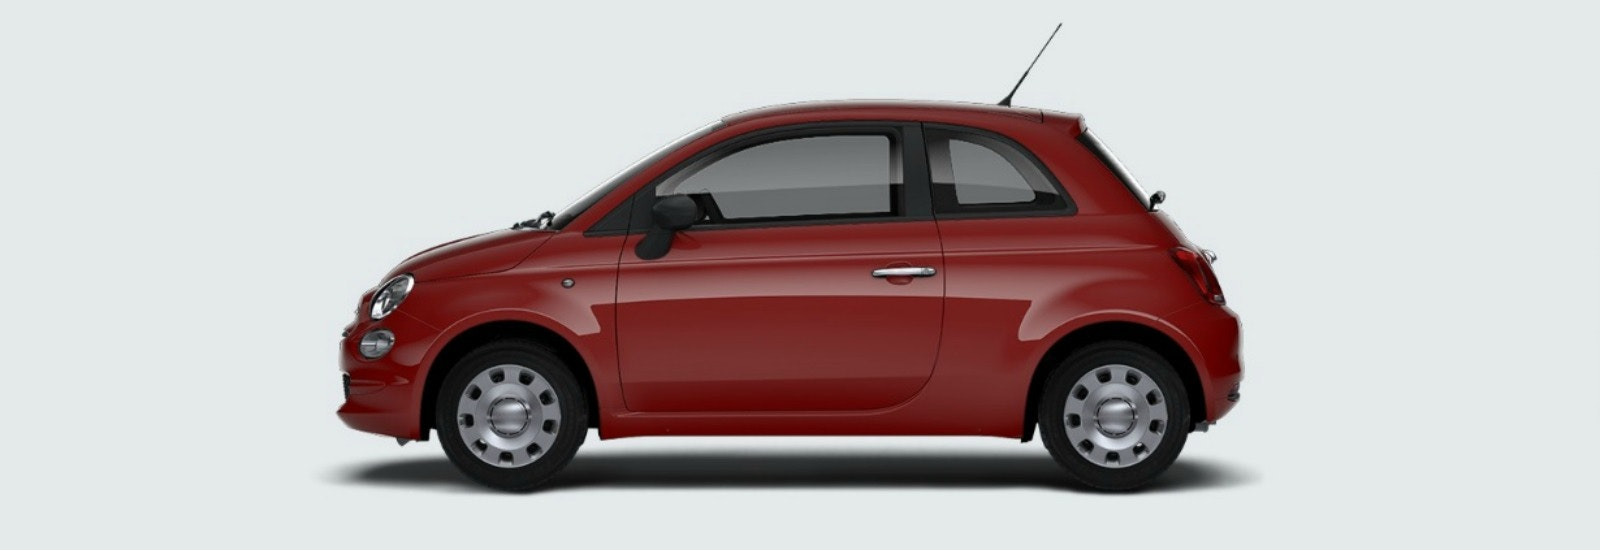 Fiat 500 0 60 >> Fiat 500 and Abarth 595 colours guide and prices | carwow